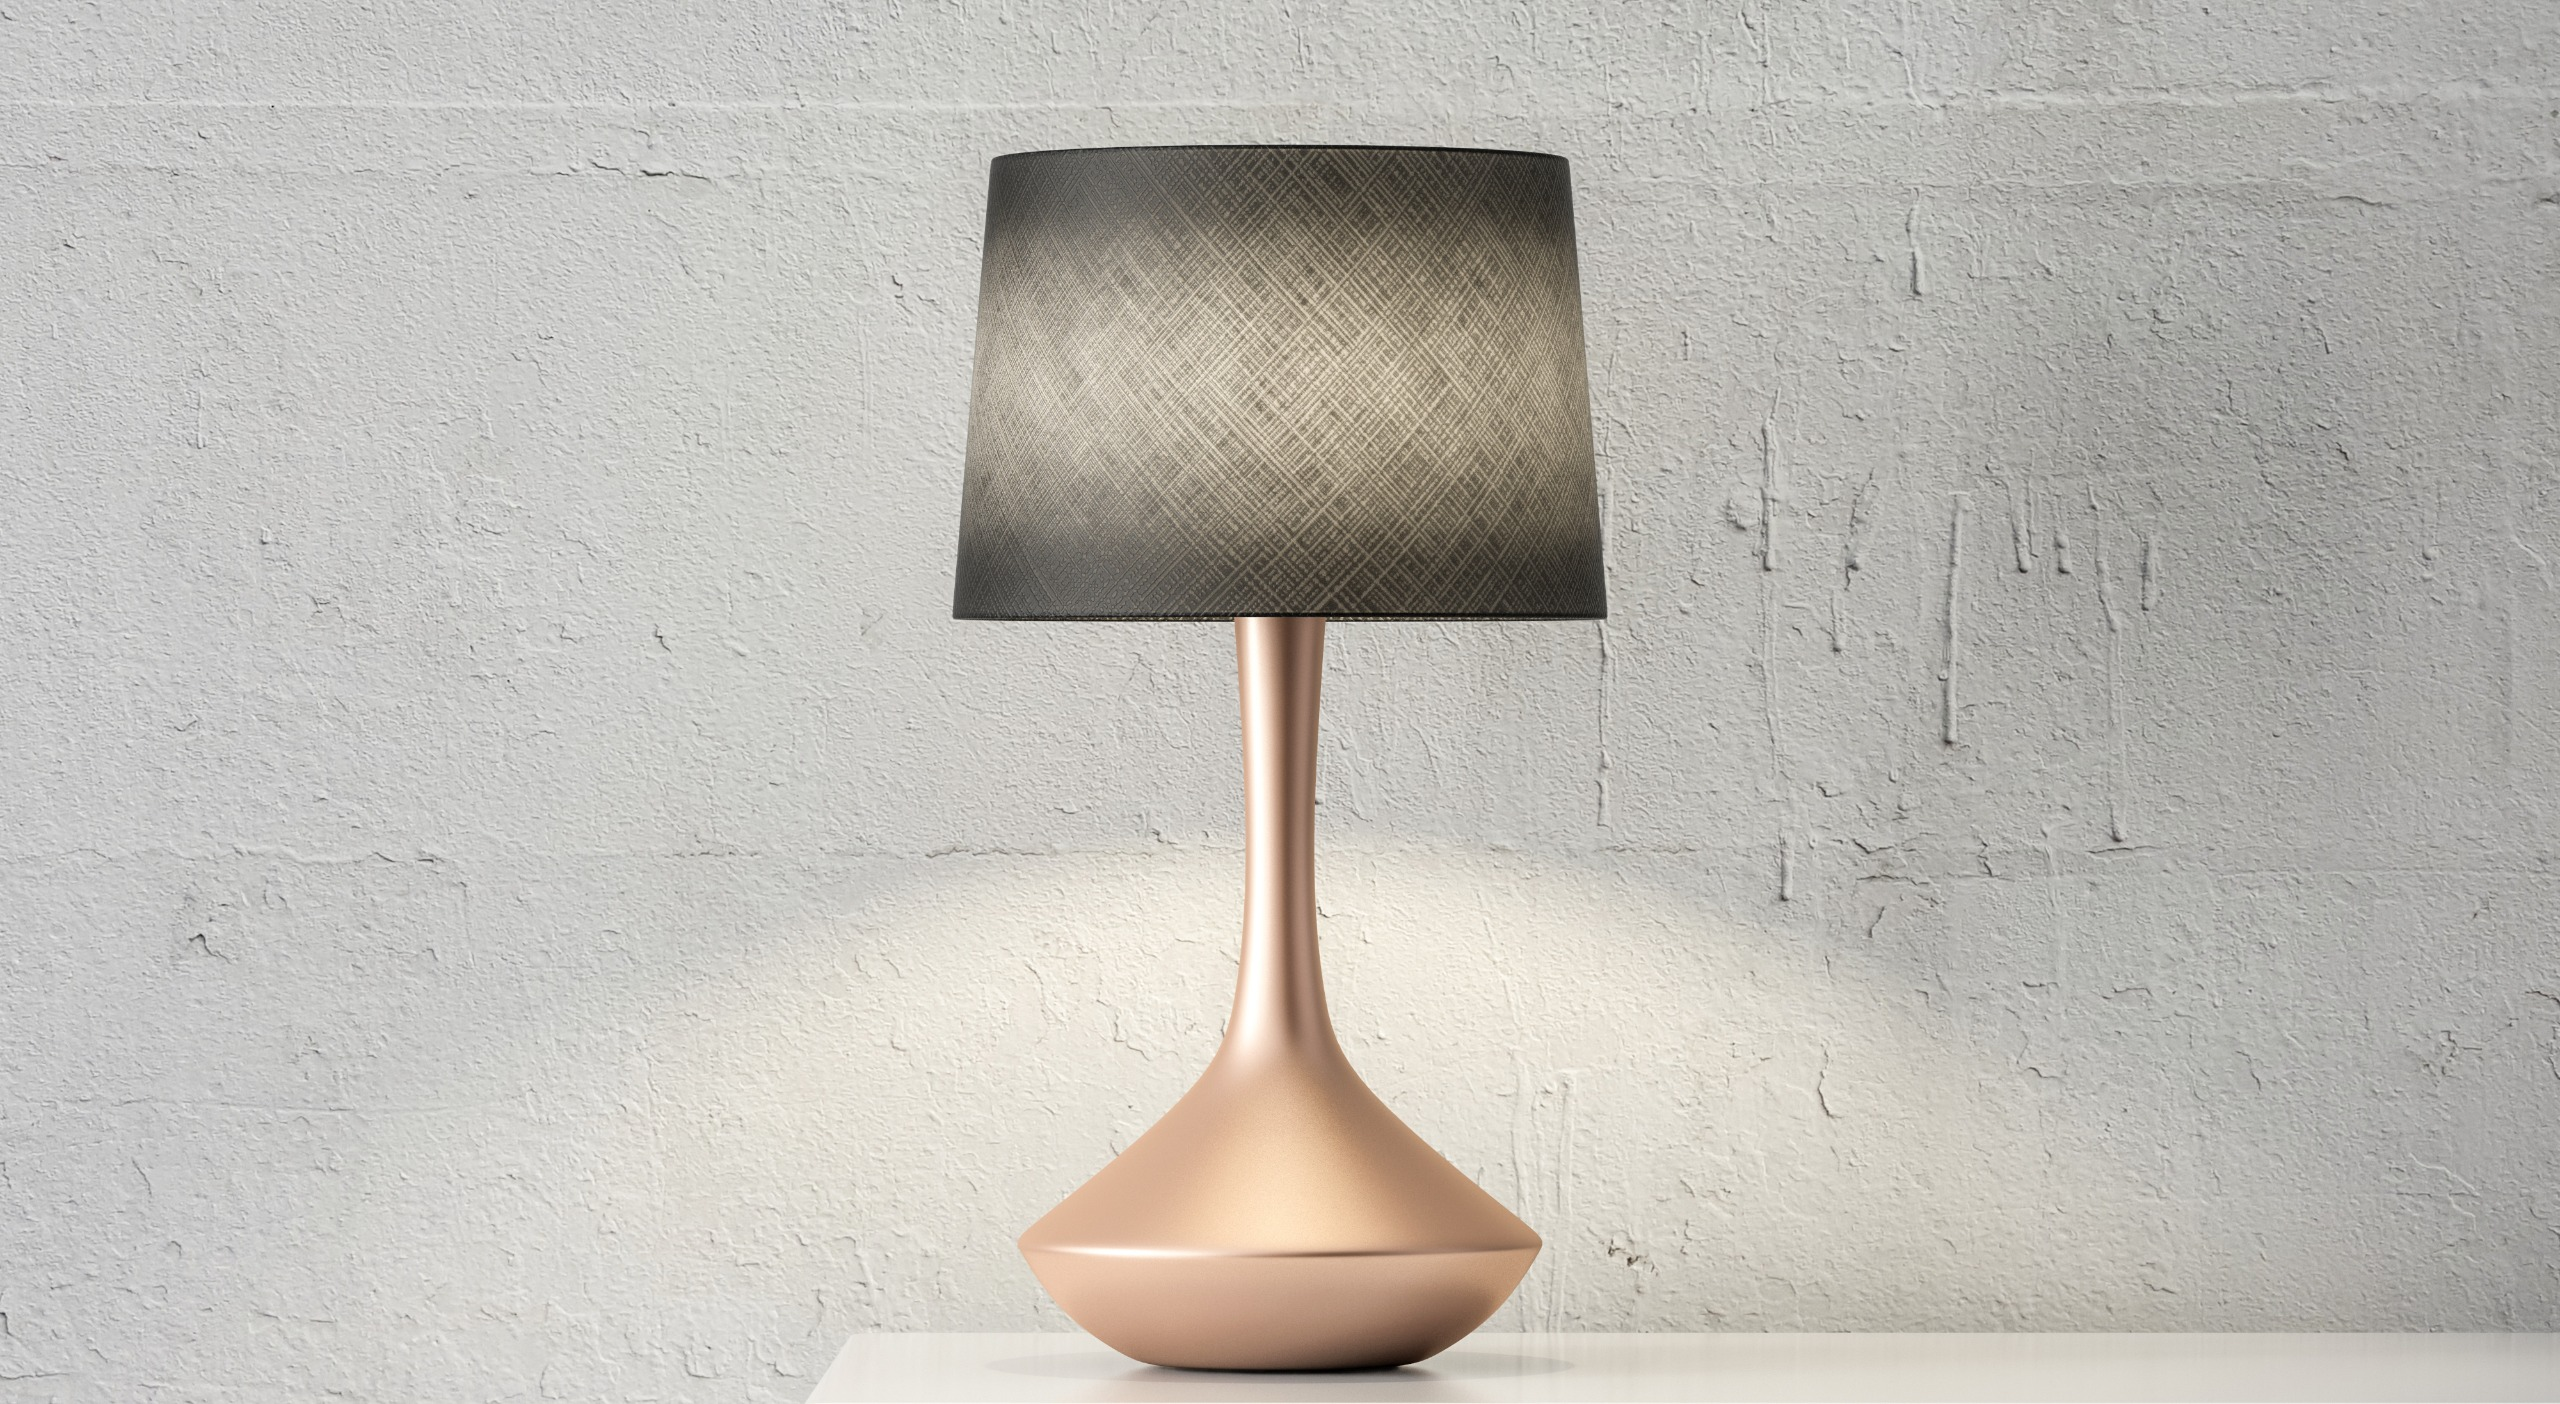 How To Clean Lamp Shades: A Quick Guide